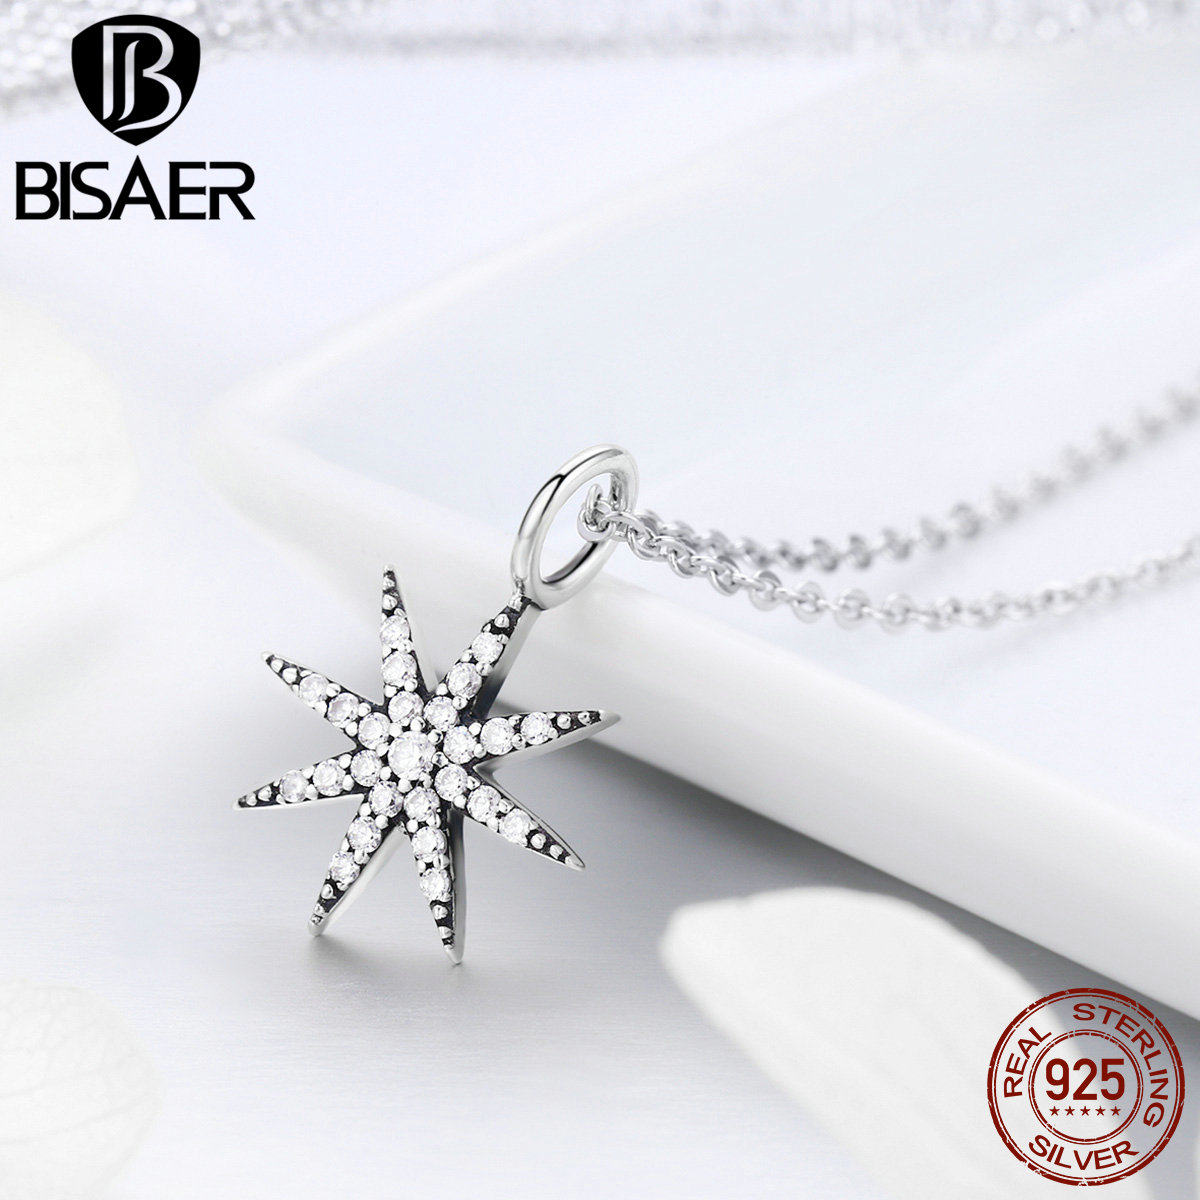 BISAER Authentic 925 Sterling Silver Sparkling Luminous CZ Snowflake Pendant Necklaces Women Fine Jewelry Brincos S925 GXN204